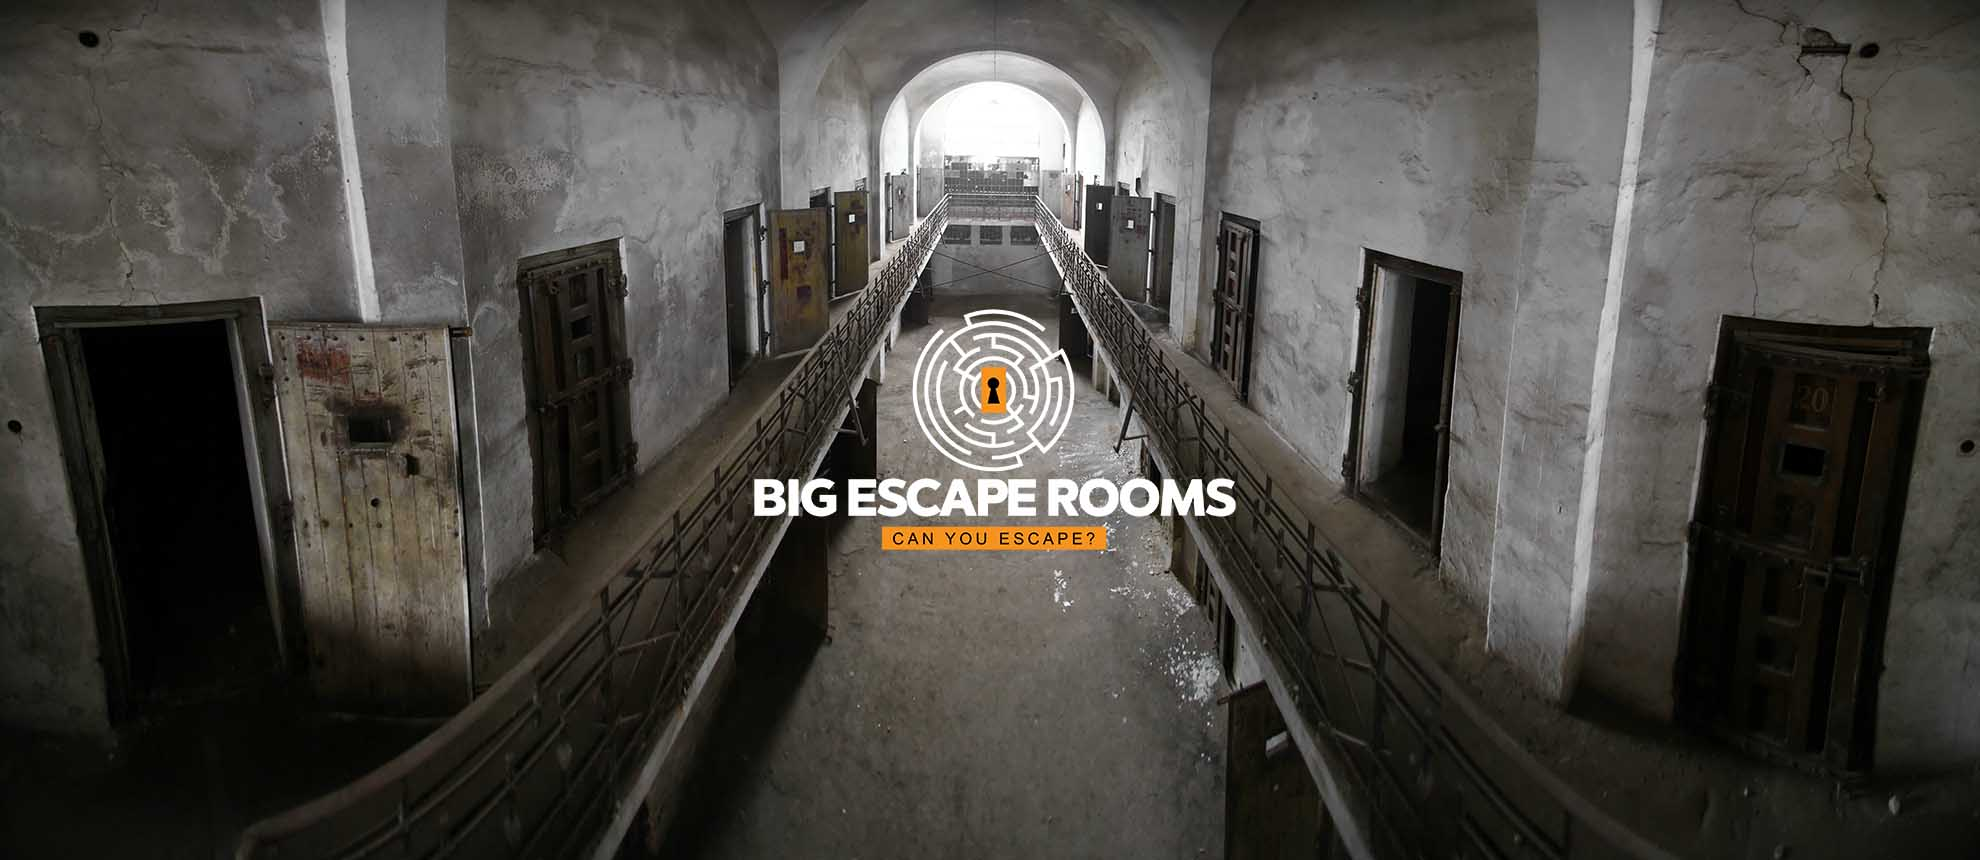 Big Escape Rooms Abandoned prison